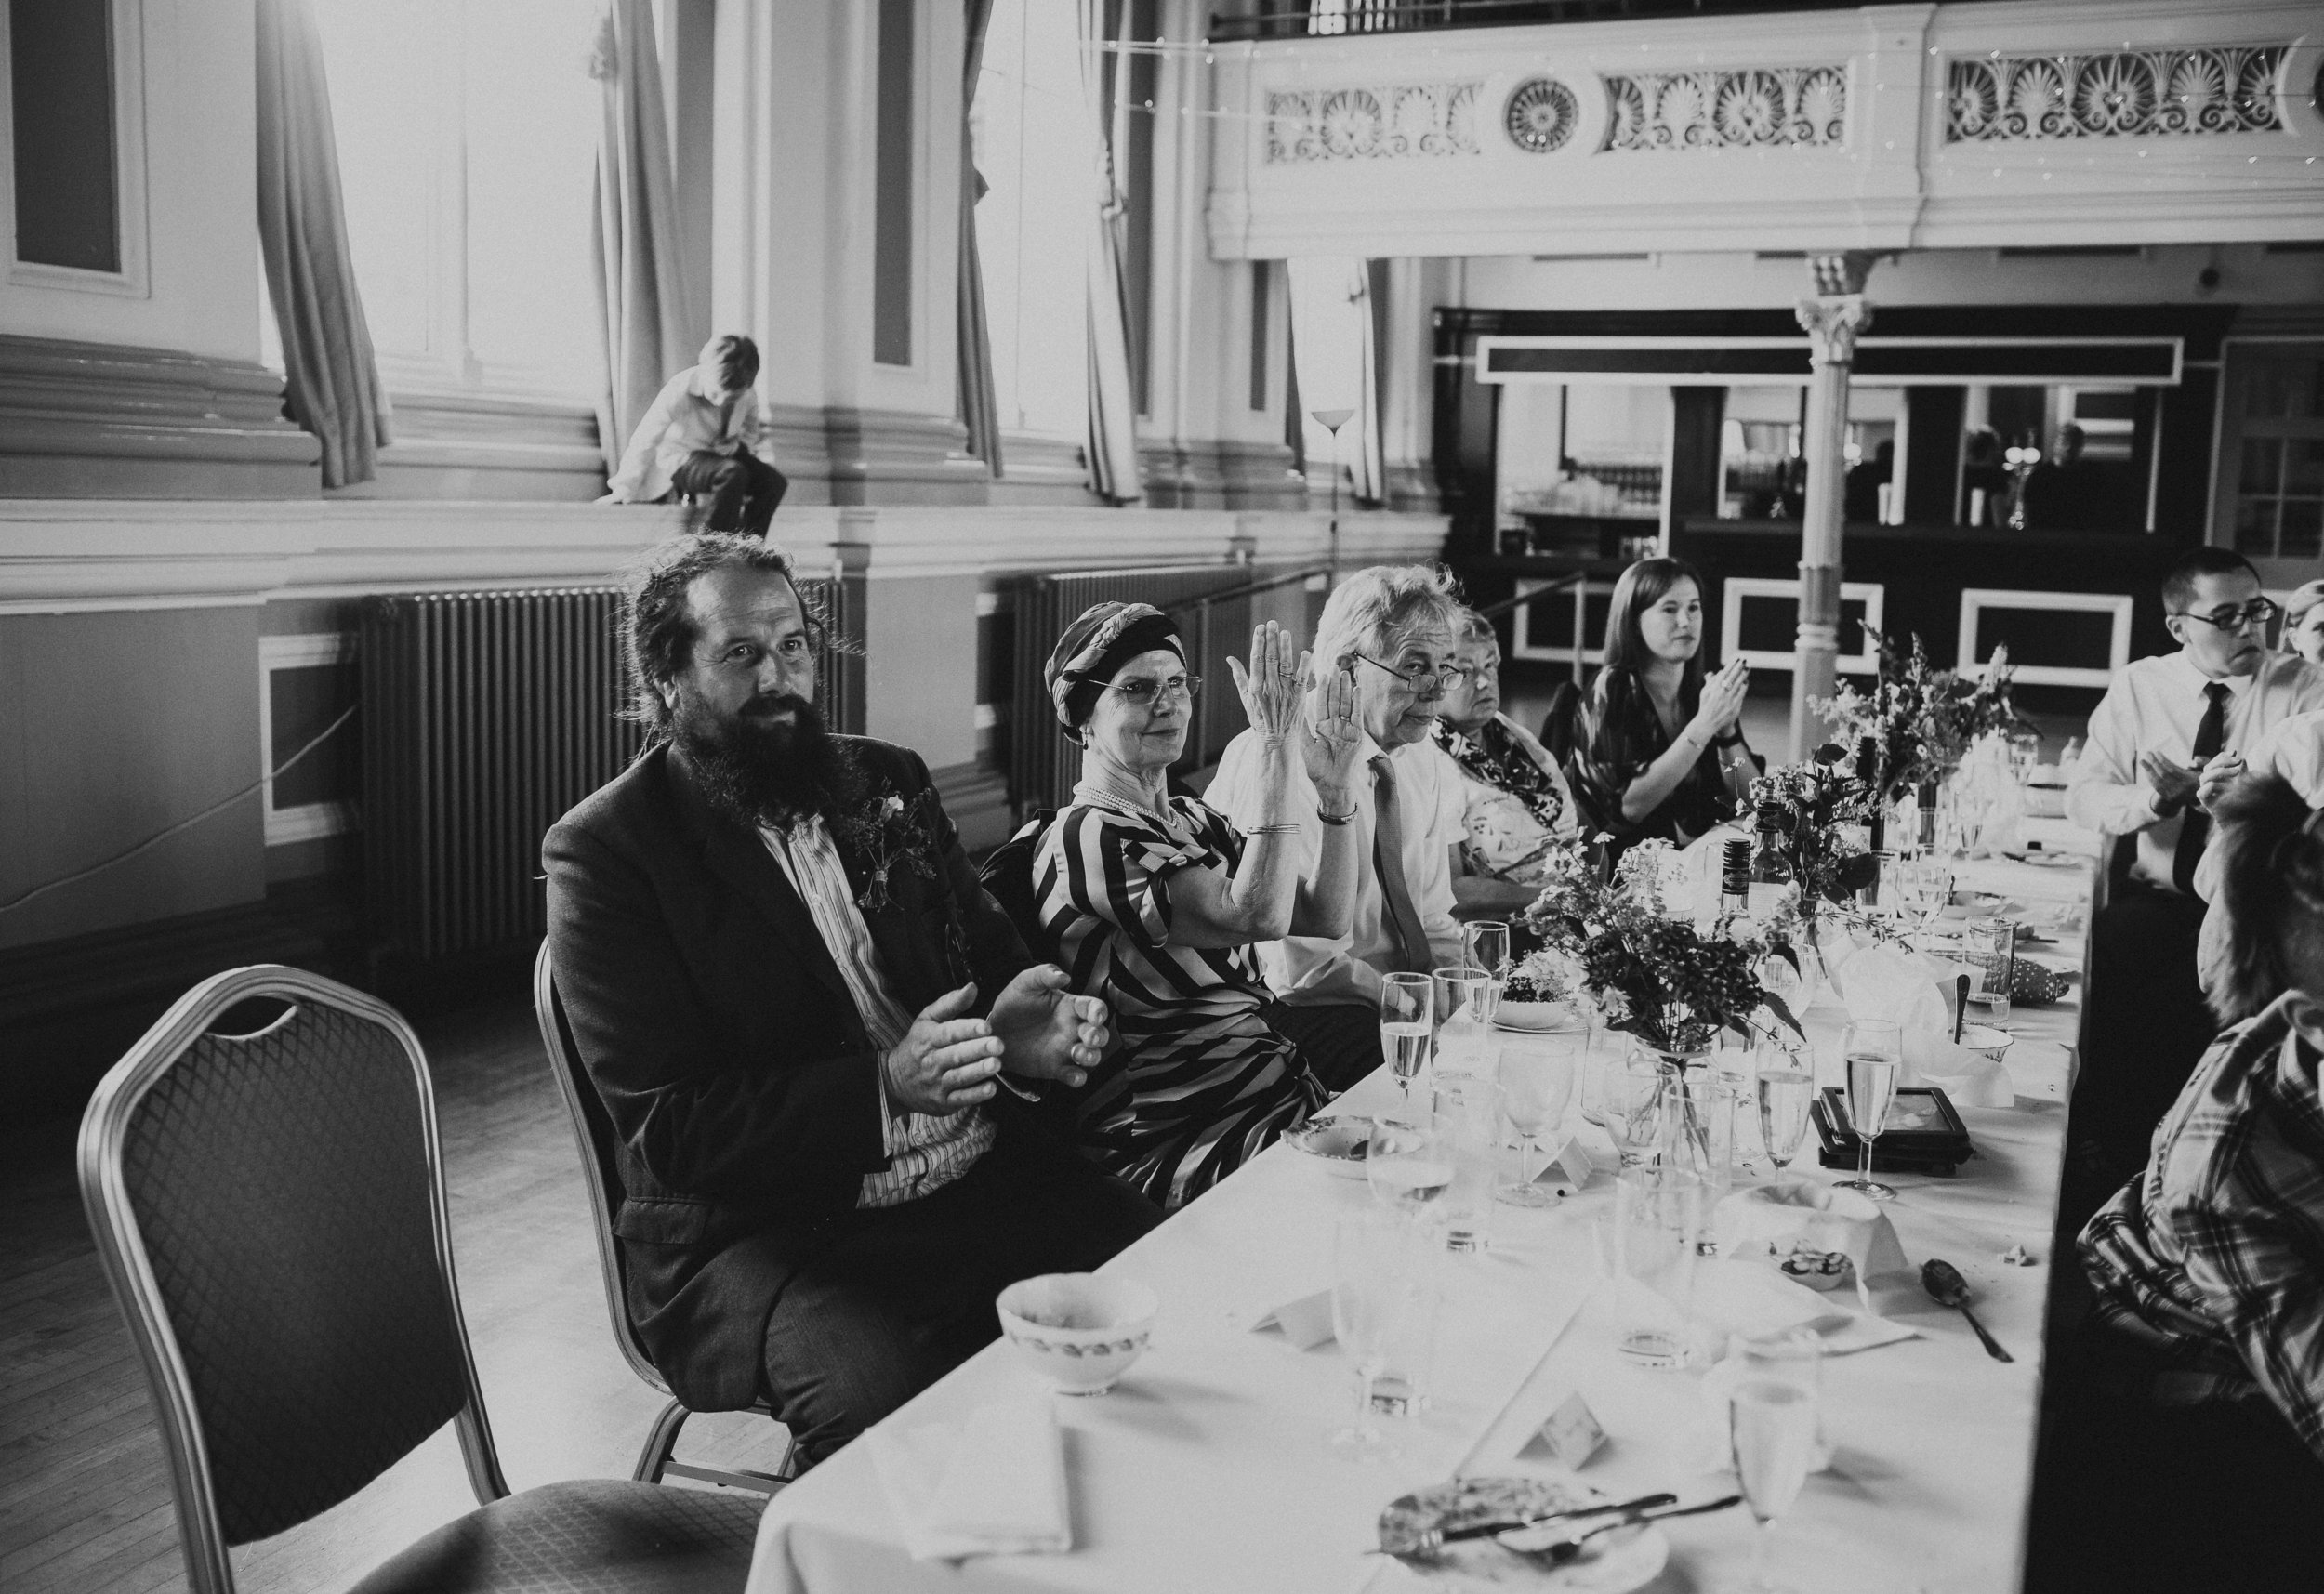 VICTORIA_HALL_SALTAIRE_VINTAGE_YORKSHIRE_WEDDING_PJ_PHILLIPS_PHOTOGRAPHY_107.jpg